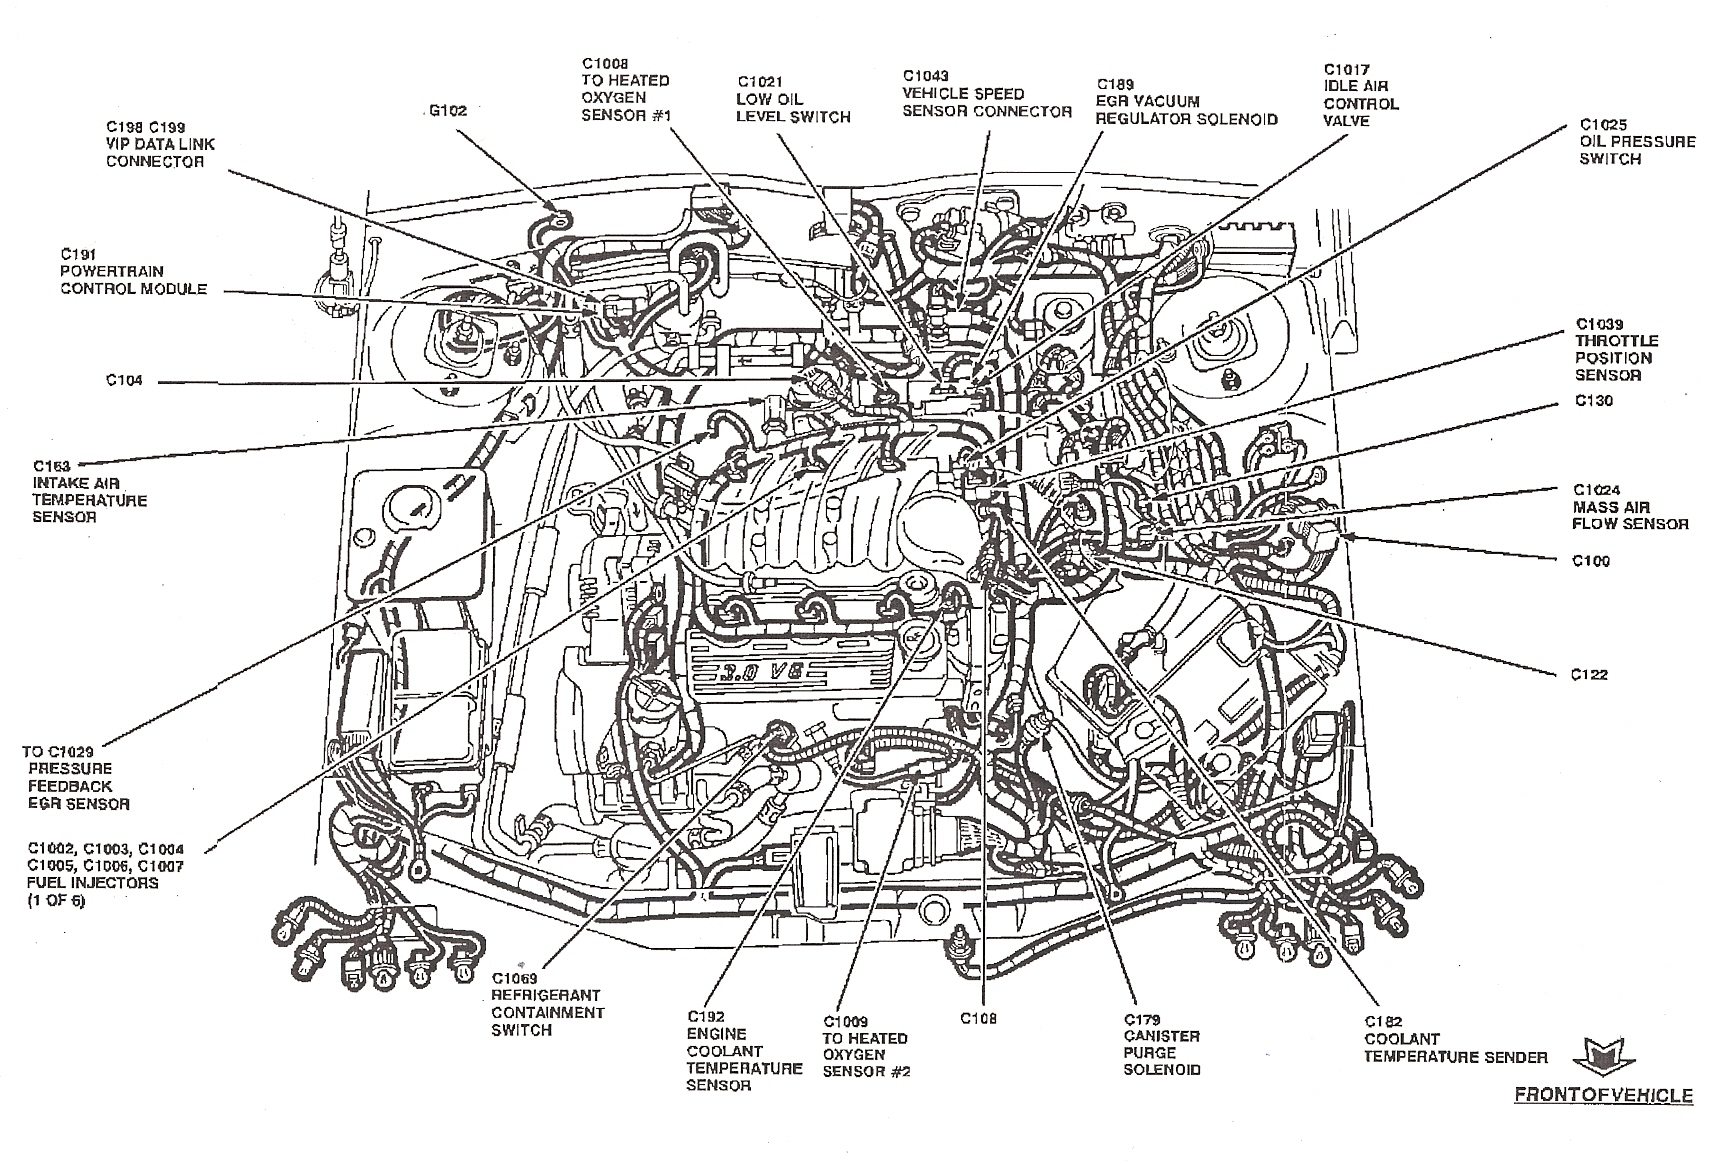 2004 Ford Freestar Engine Diagram Wiring Library. 2004 Ford Freestar Engine Diagram Similiar Escape Rh Ghonq Tripa Co 2000 Taurus. Ford. 2004 Ford Escape O2 Sensor Location Diagram At Scoala.co